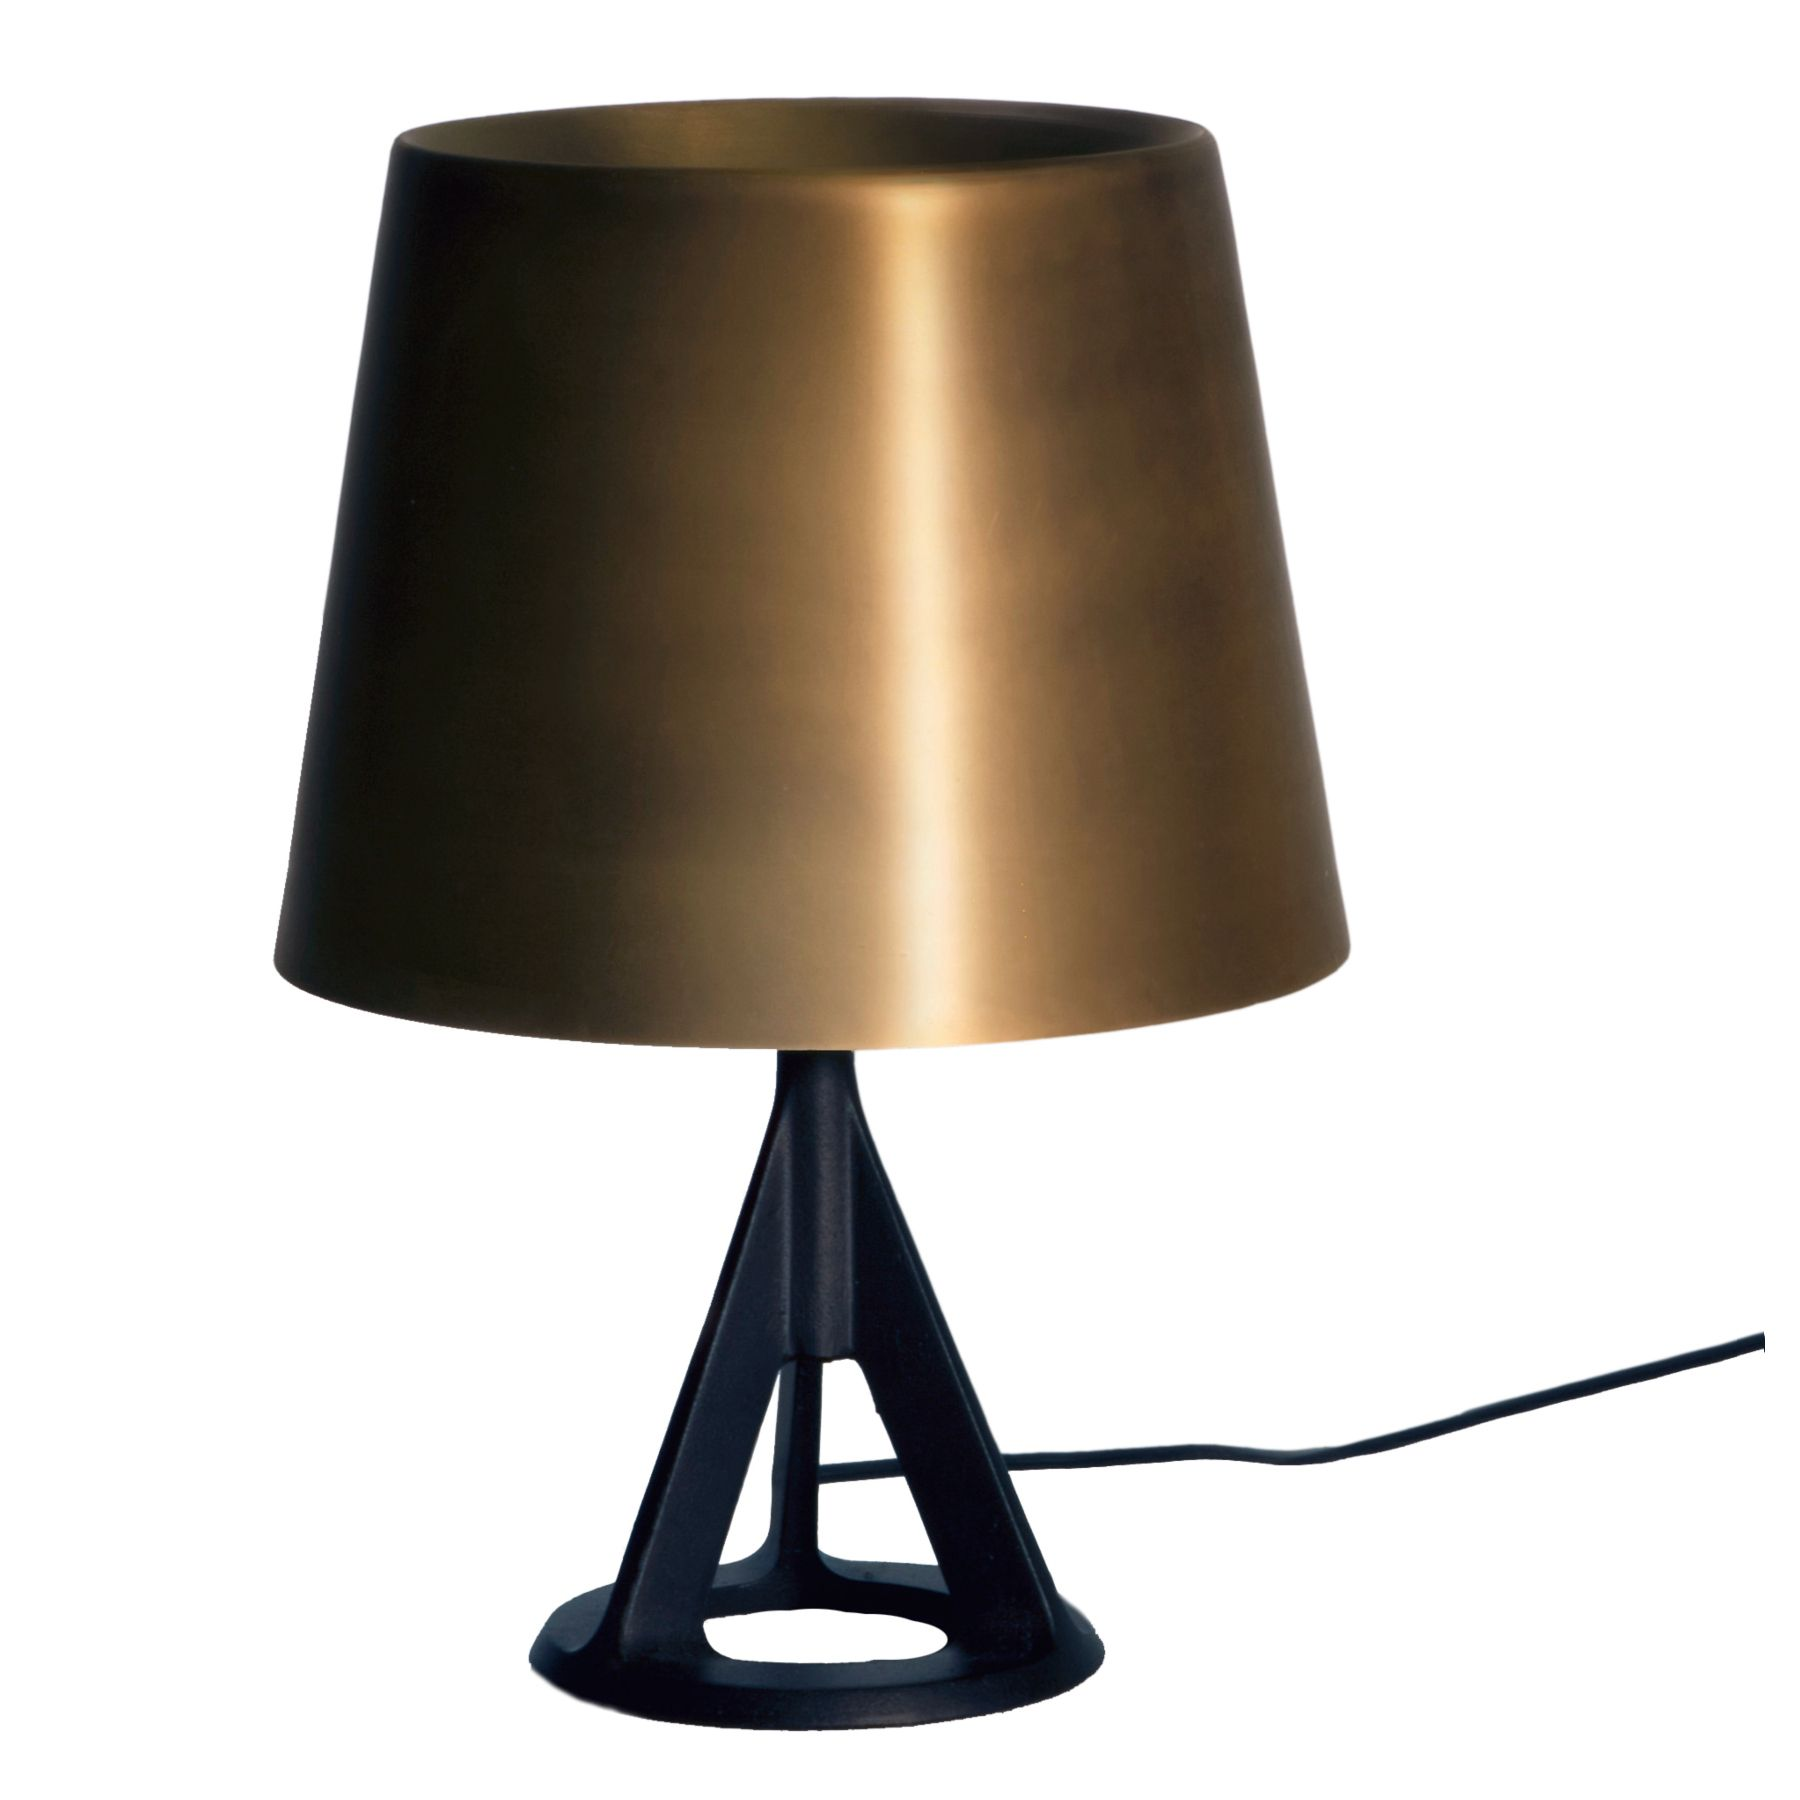 Base Table Lamp By Tom Dixon Bss01 Tusm2 Brass Table Lamps Table Lamp Lamp